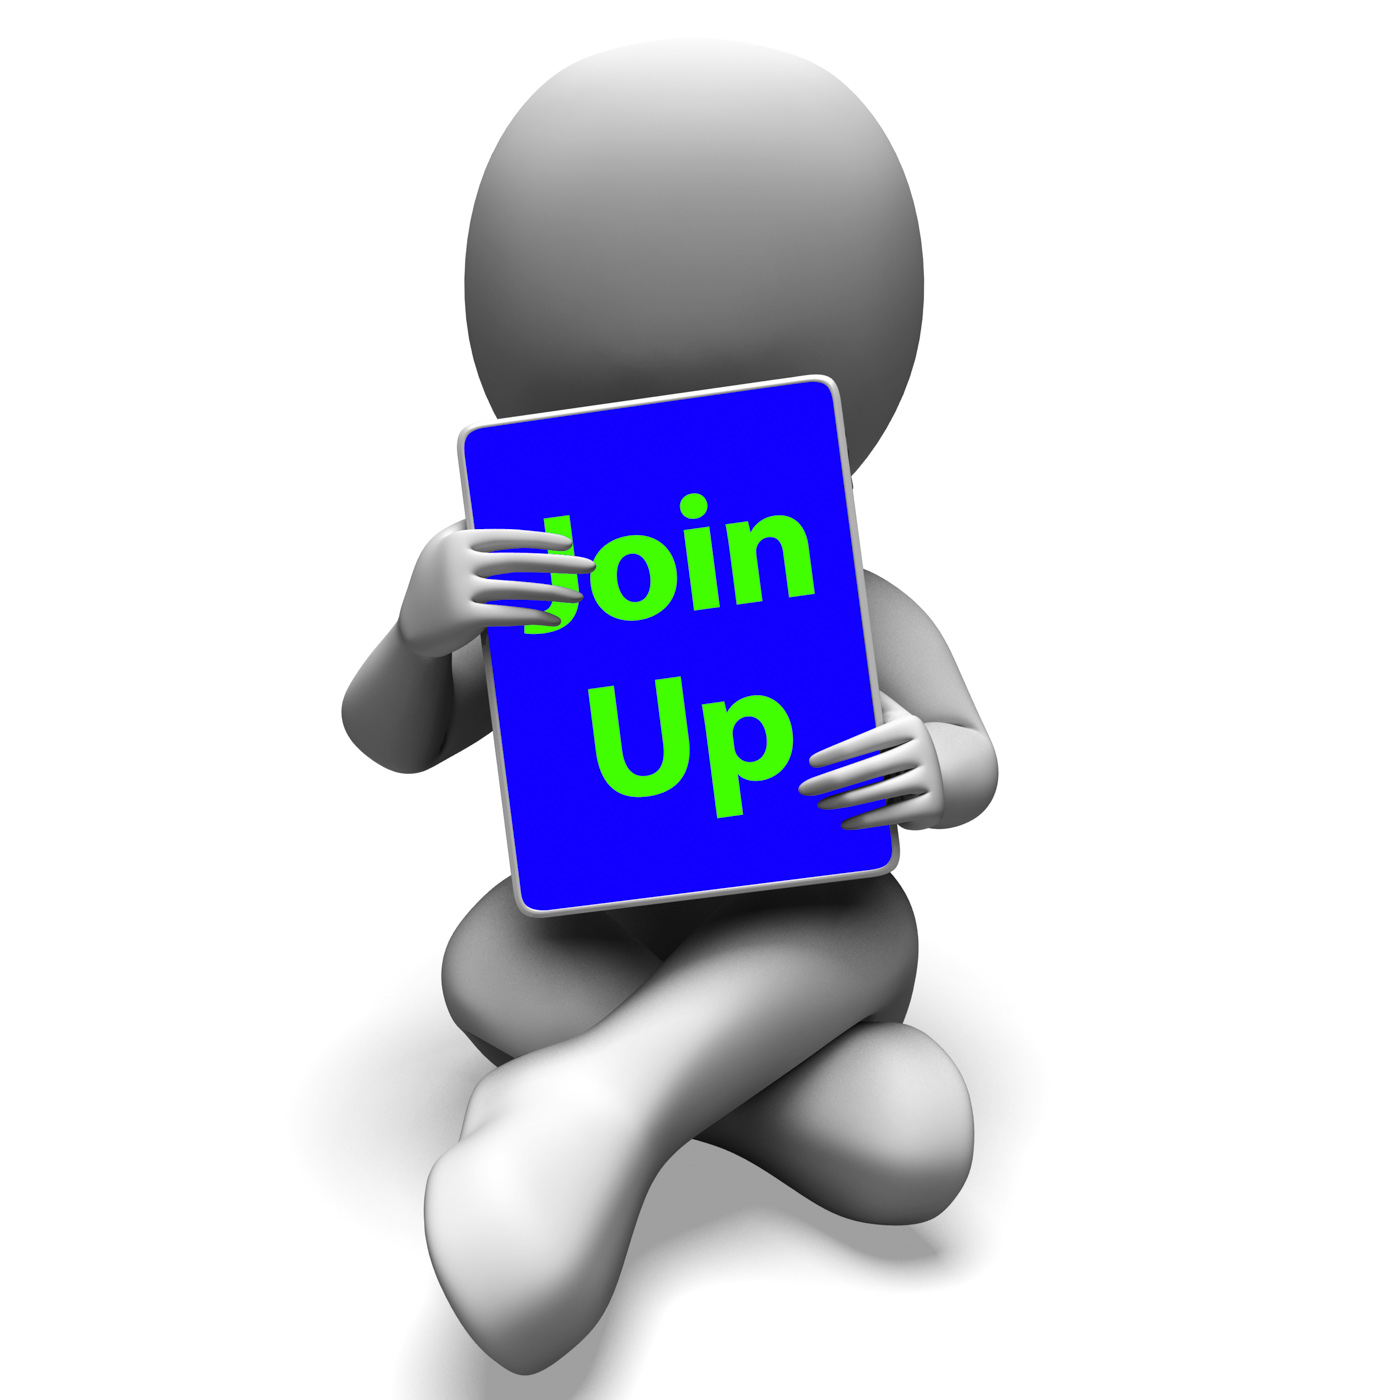 Join up tablet character shows subscription membership and registratio photo